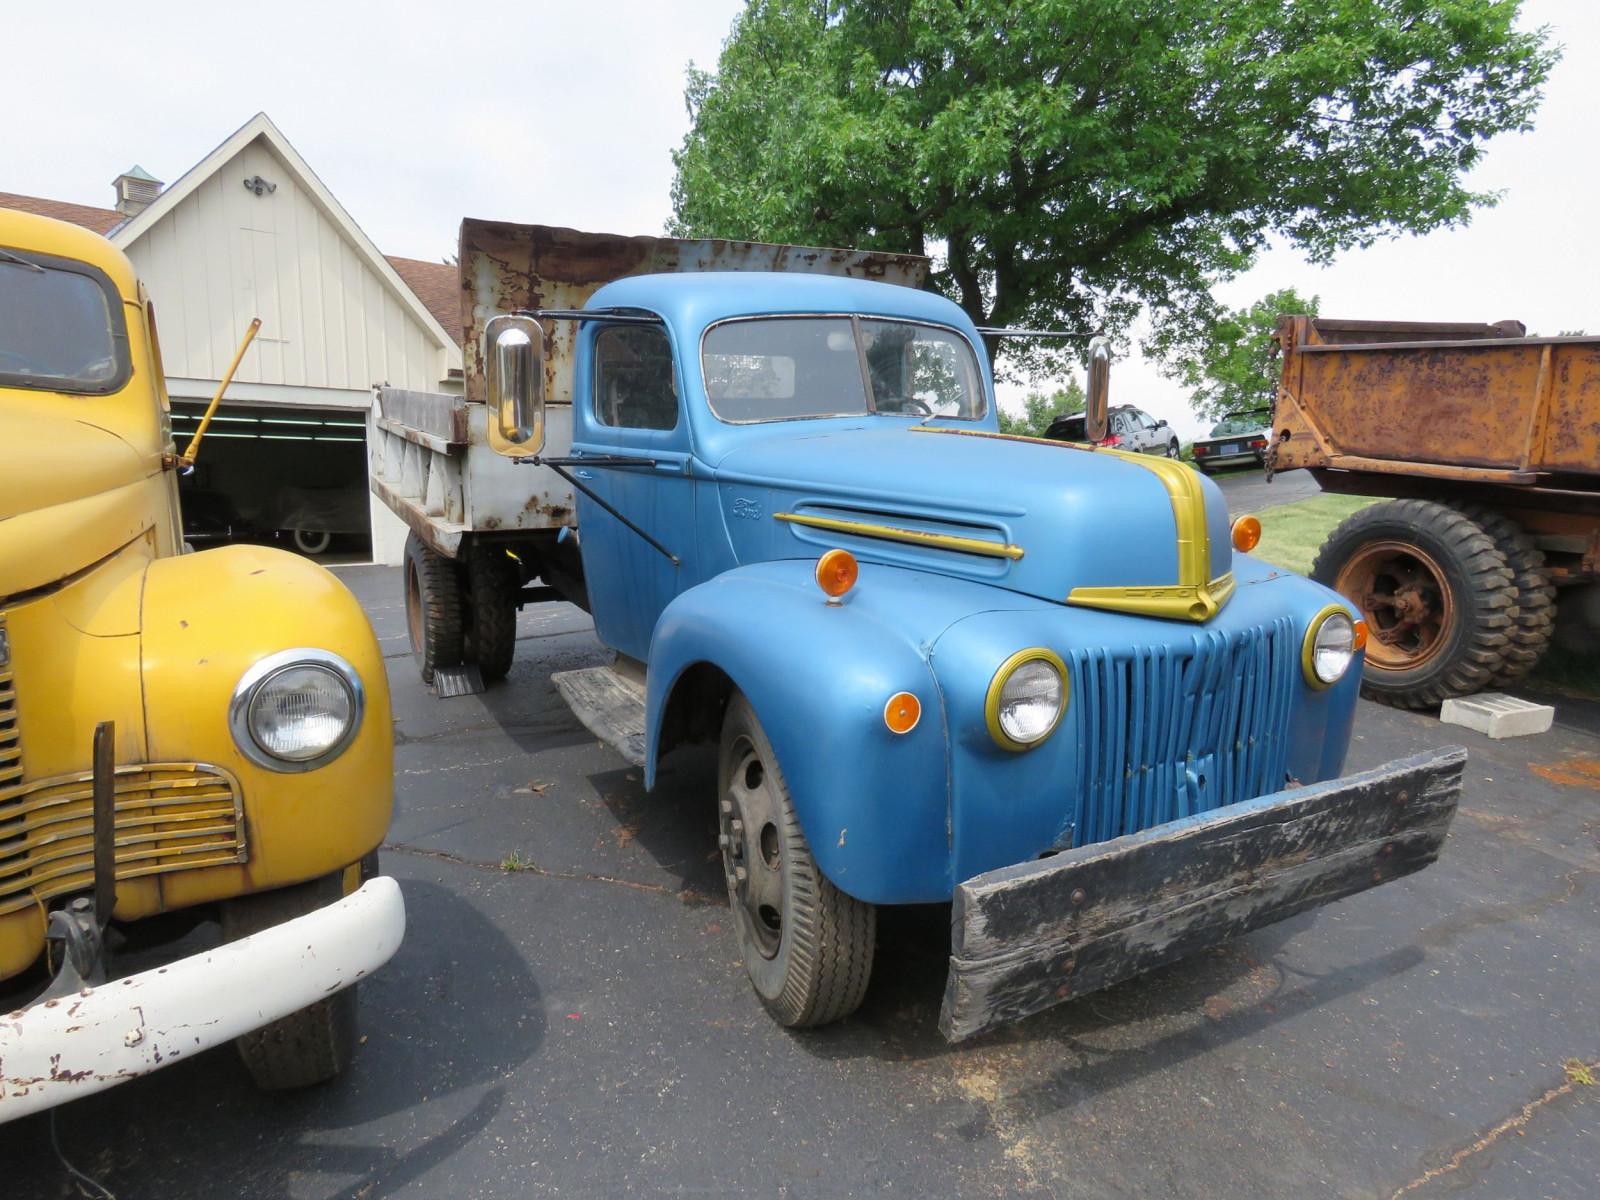 1946 Ford Dump Truck - Image 1